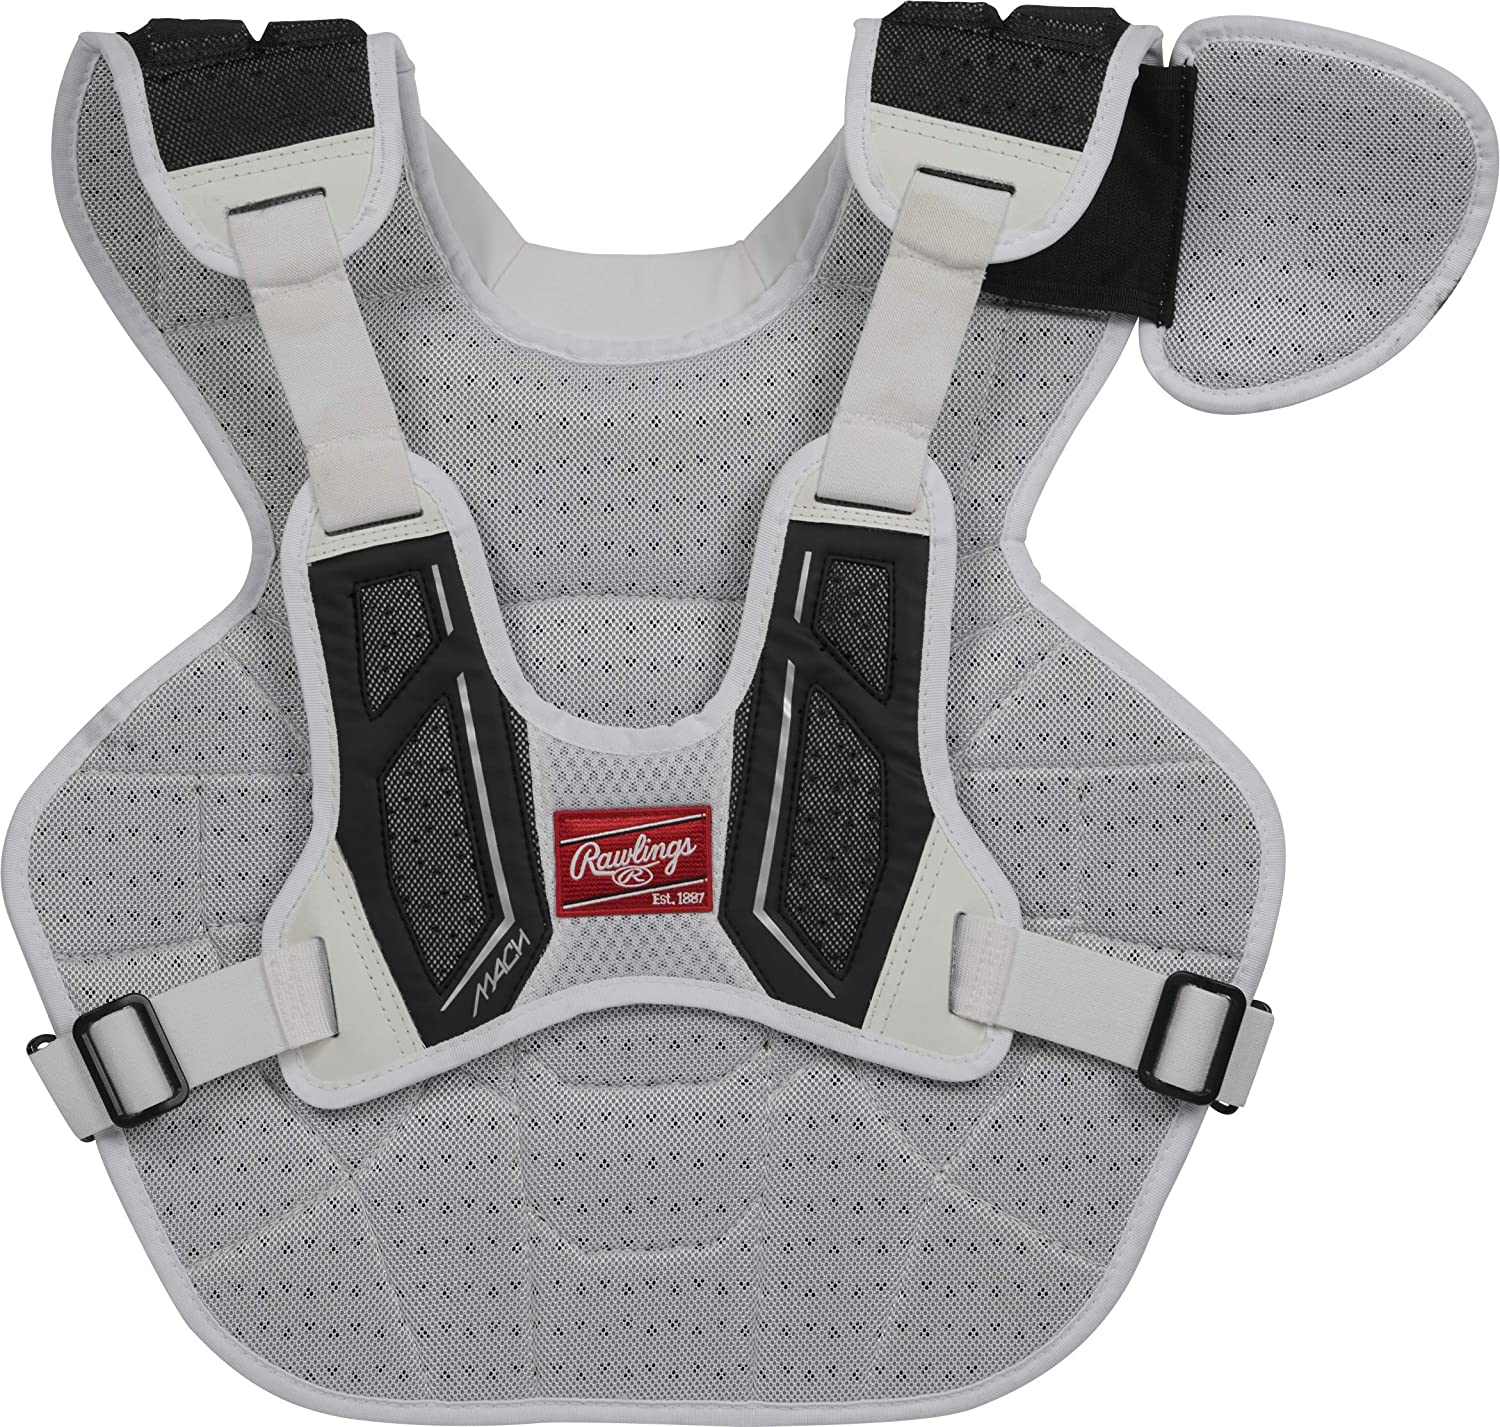 Rawlings Mach Collegiate Level Baseball Catchers Chest Protector